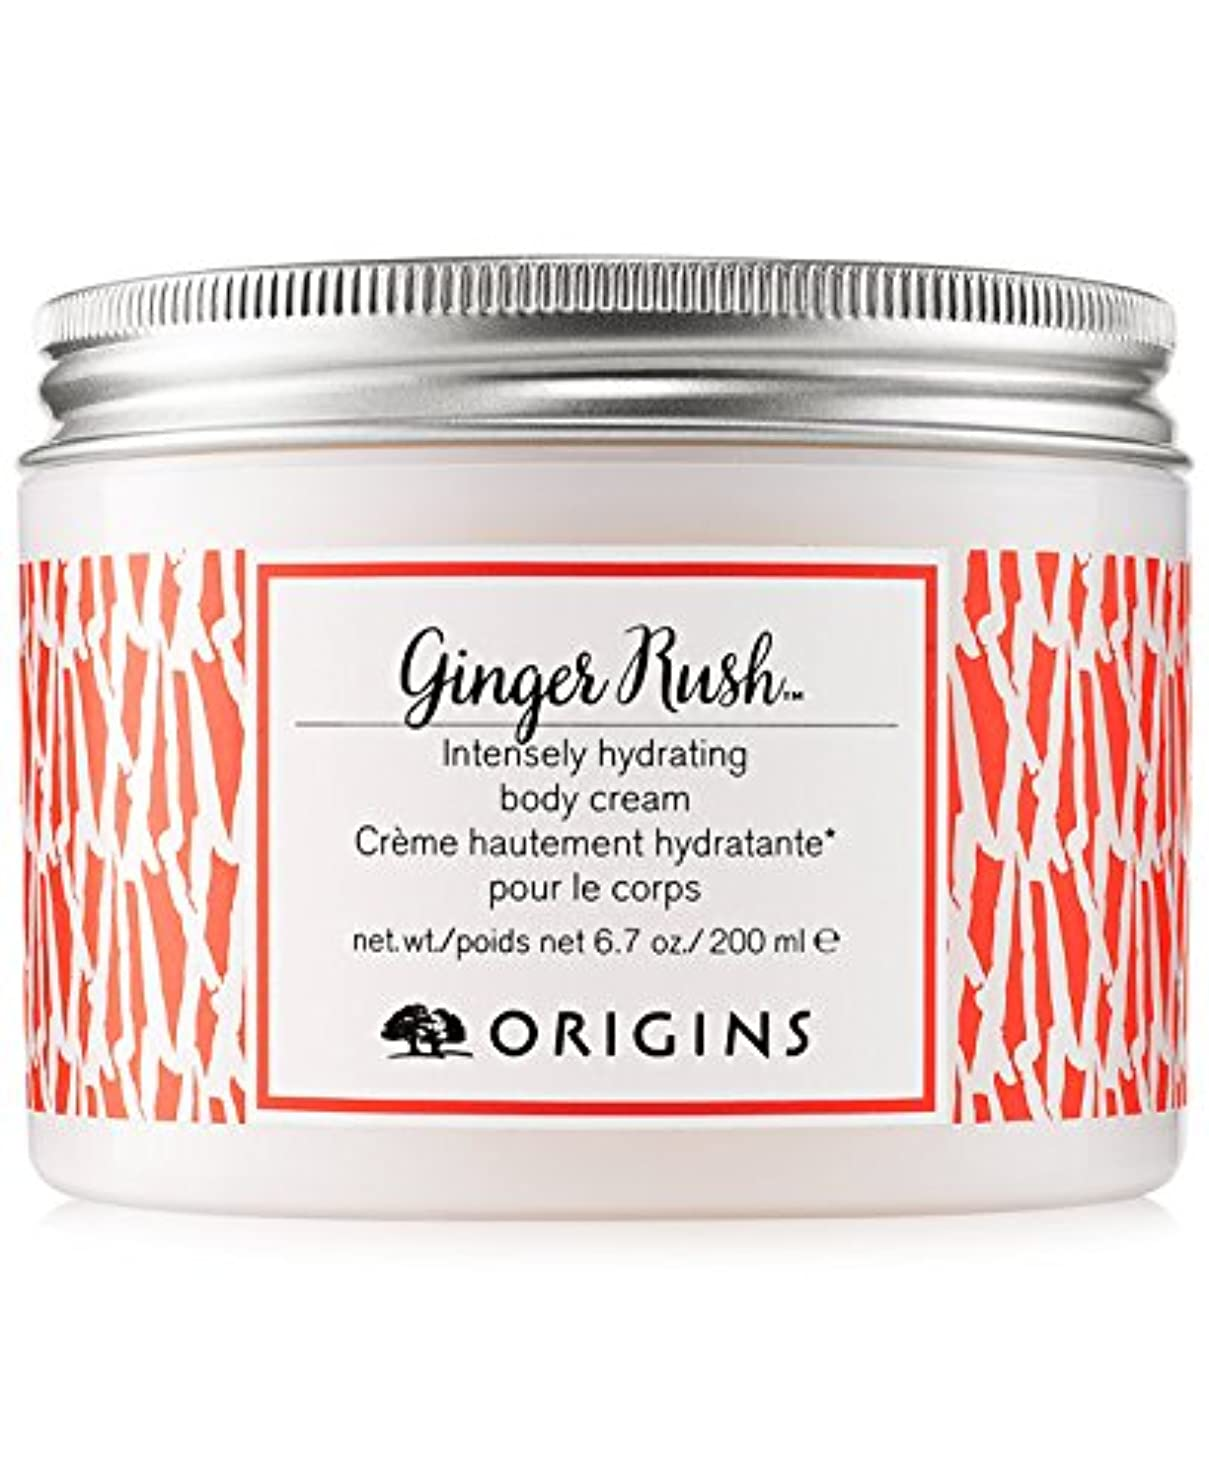 不愉快に爬虫類ベックスOrigins Ginger Rush Hydrating Body Cream, 6.7 oz.200 ml